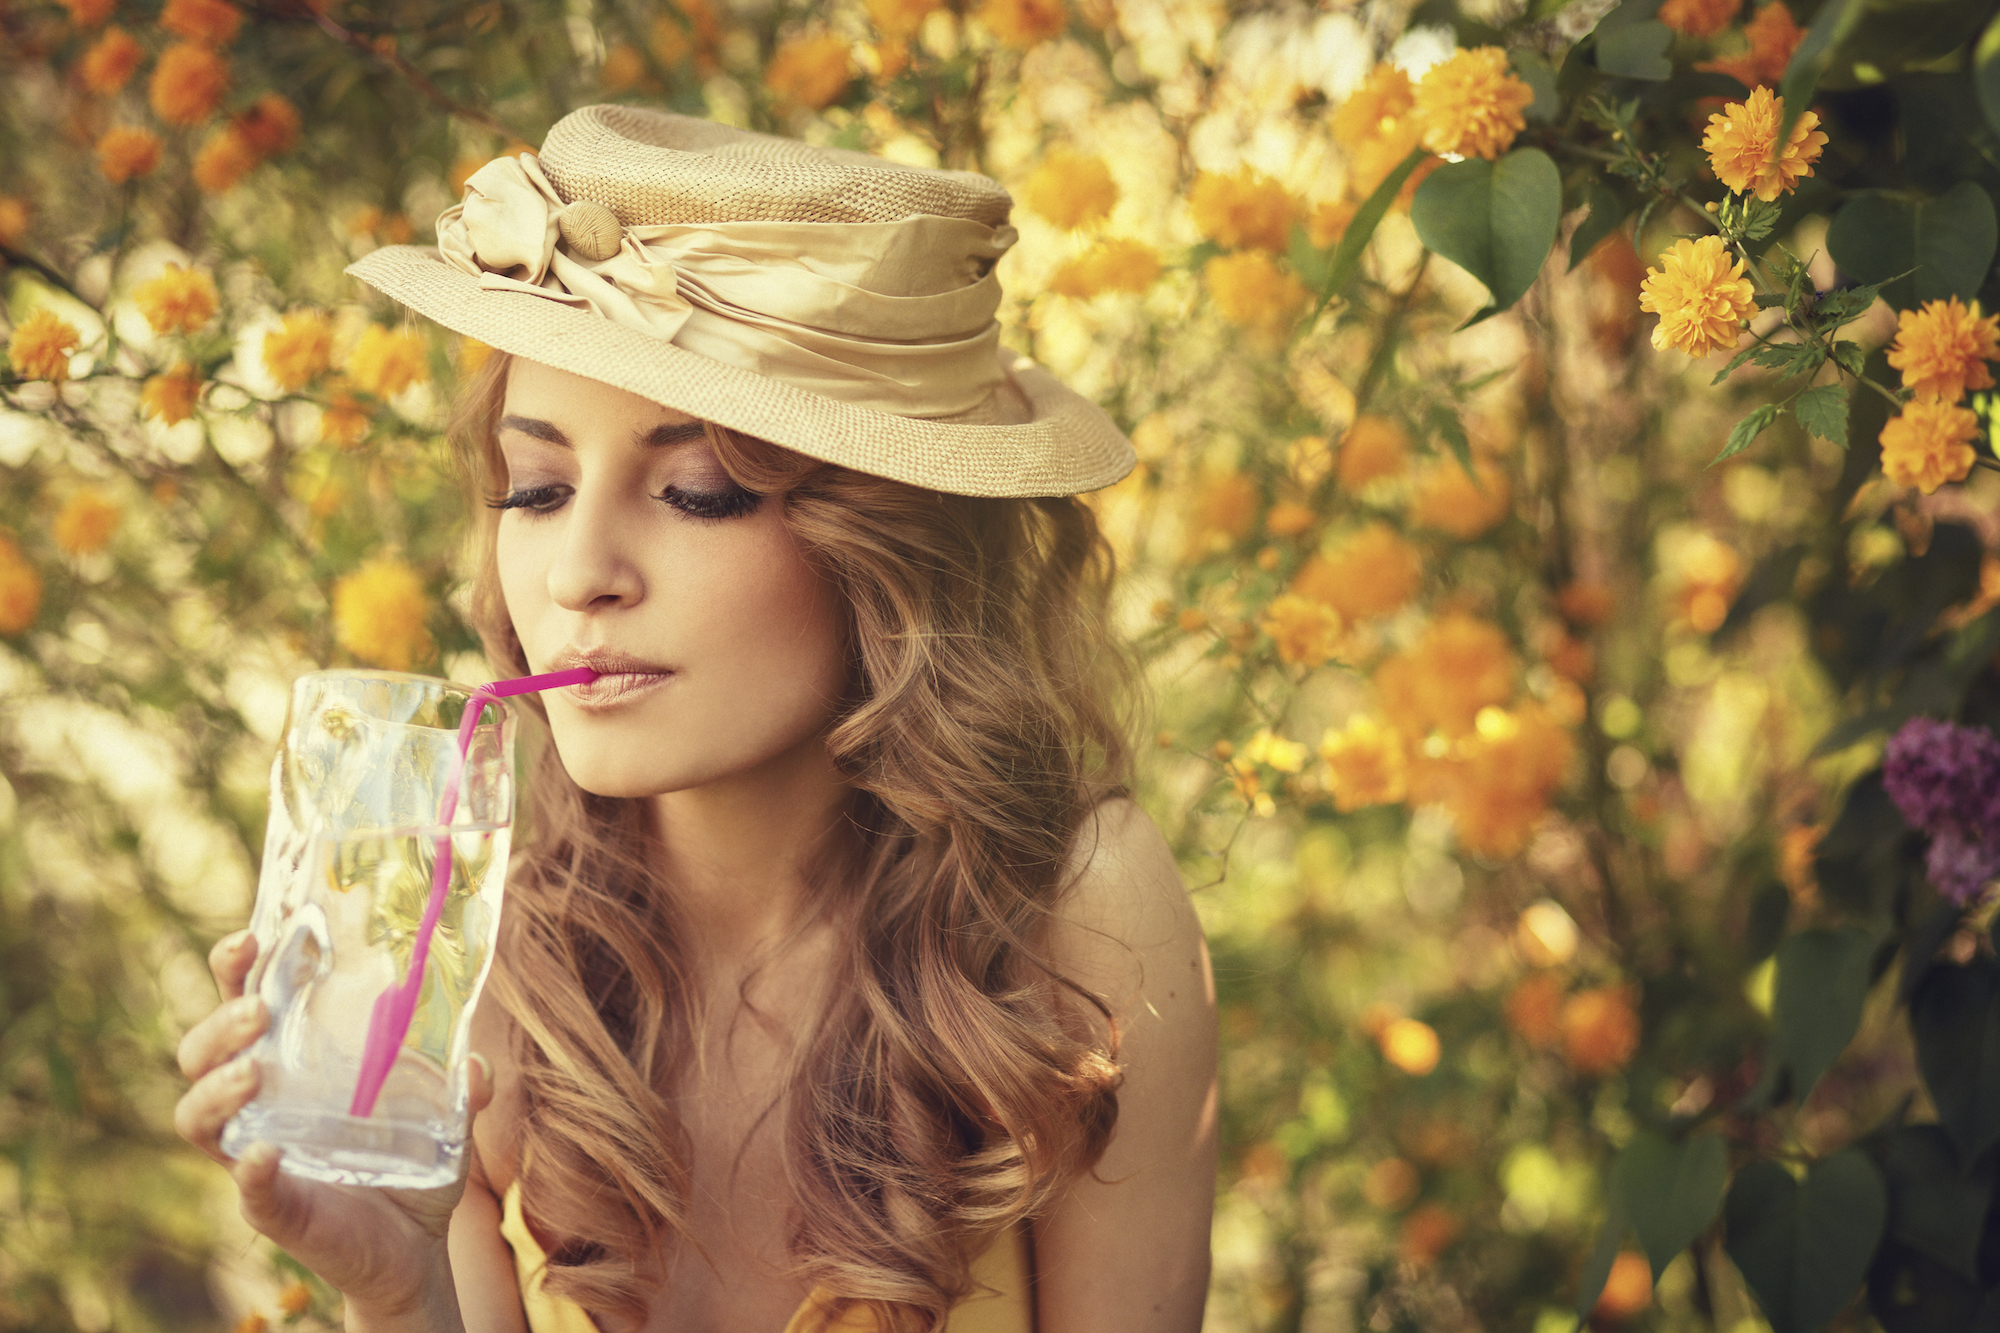 Girl with a hat drinking a glass of water with a straw